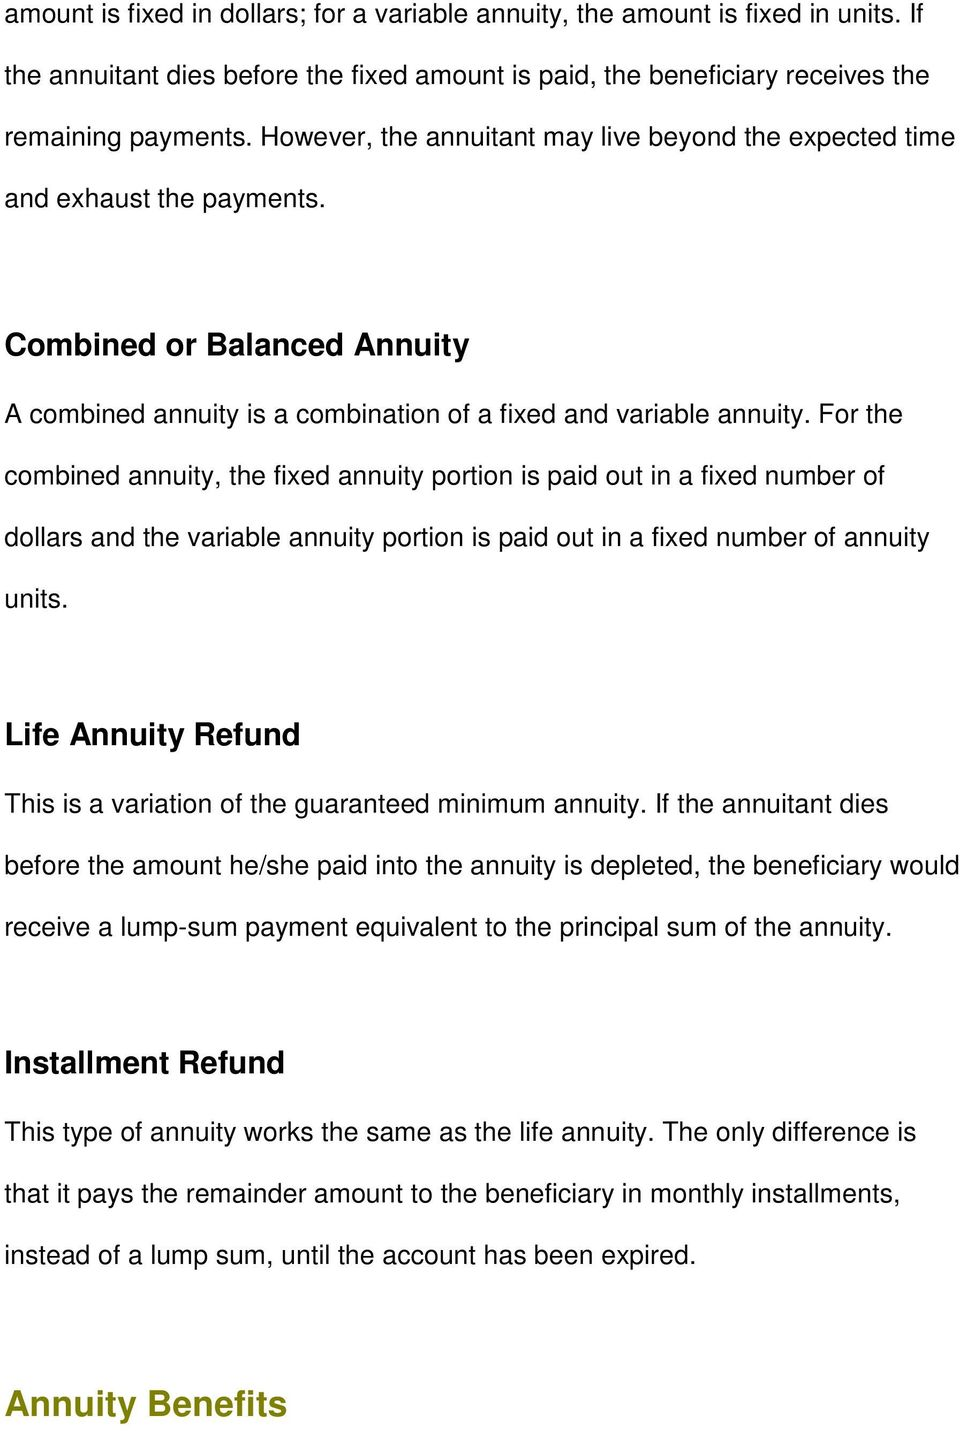 For the combined annuity, the fixed annuity portion is paid out in a fixed number of dollars and the variable annuity portion is paid out in a fixed number of annuity units.